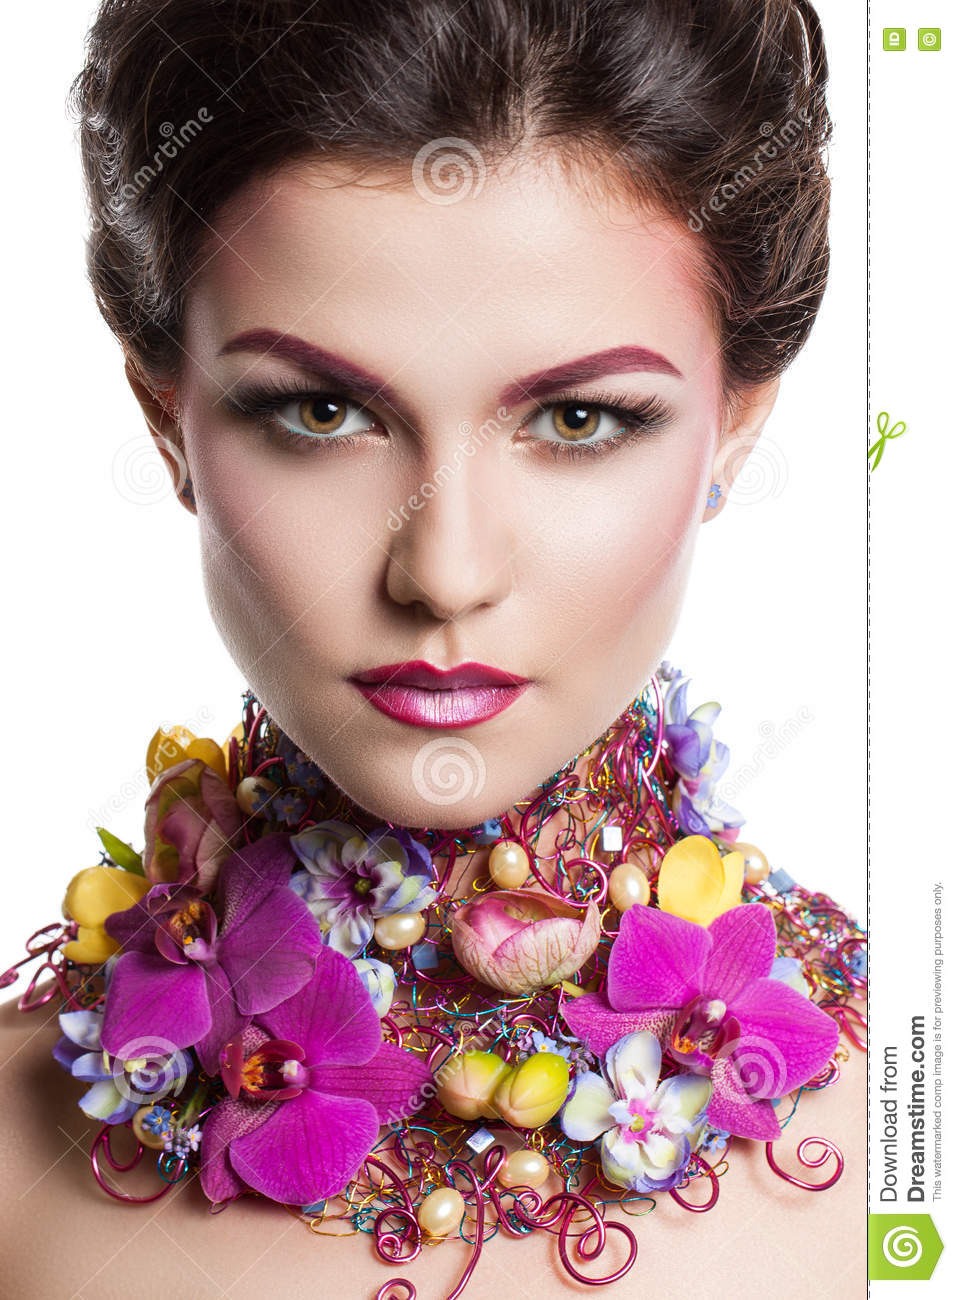 Fashion Beauty Woman With Flowers In Her Hair And Around Her Neck Perfect Creative Make Up And